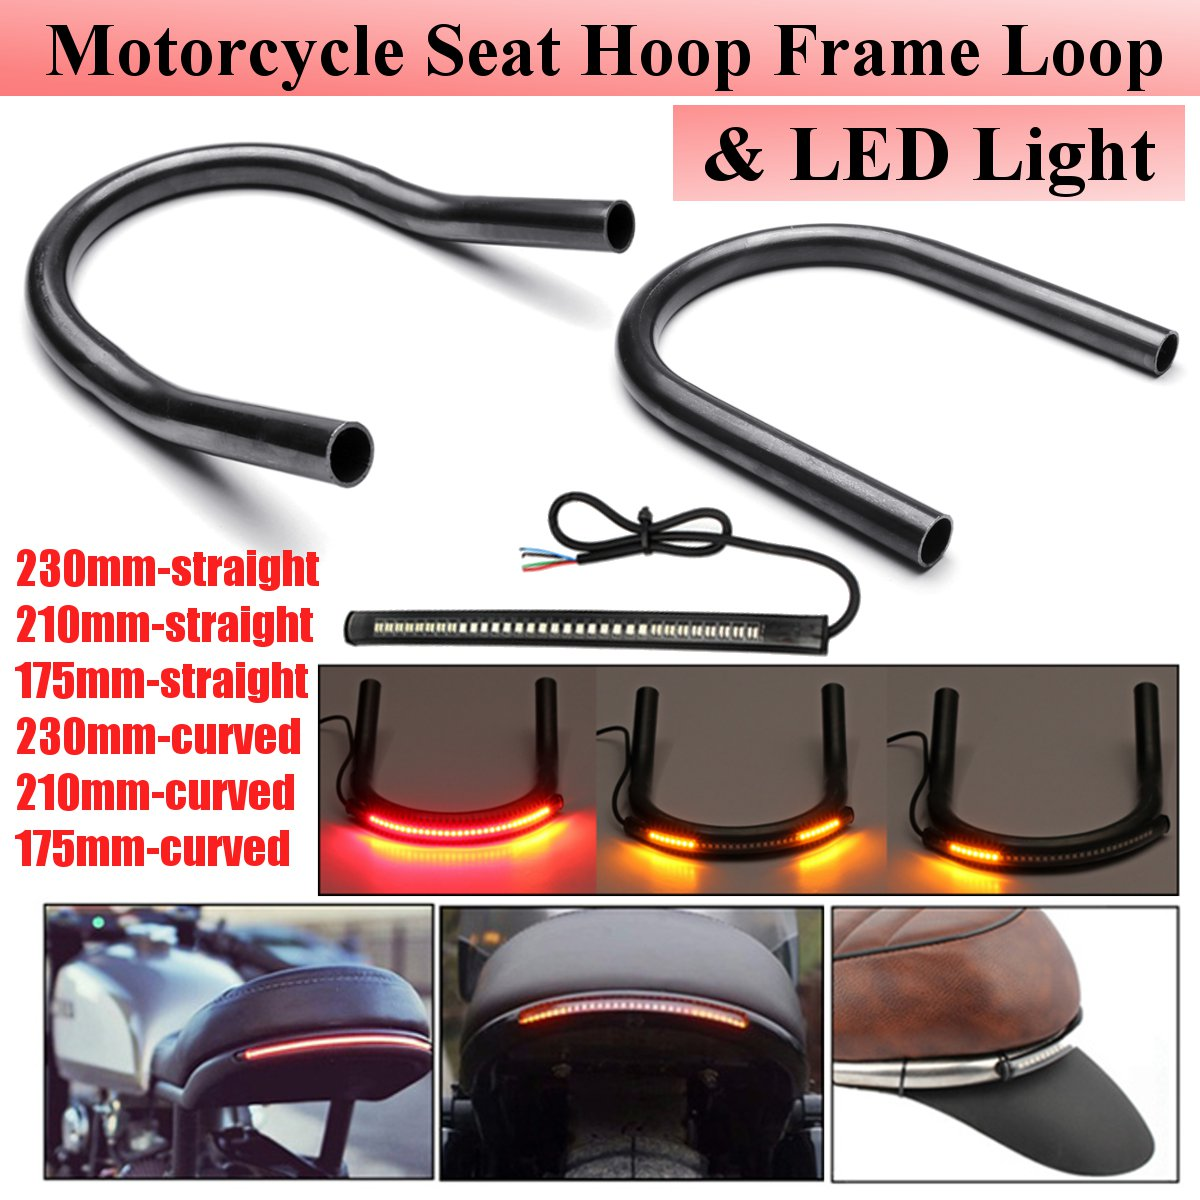 Black Motorcycle Steel Rear Frame Hoop Brat Seat Loop With Turn Signal Light Led for Cafe Racer 230MM Tubing